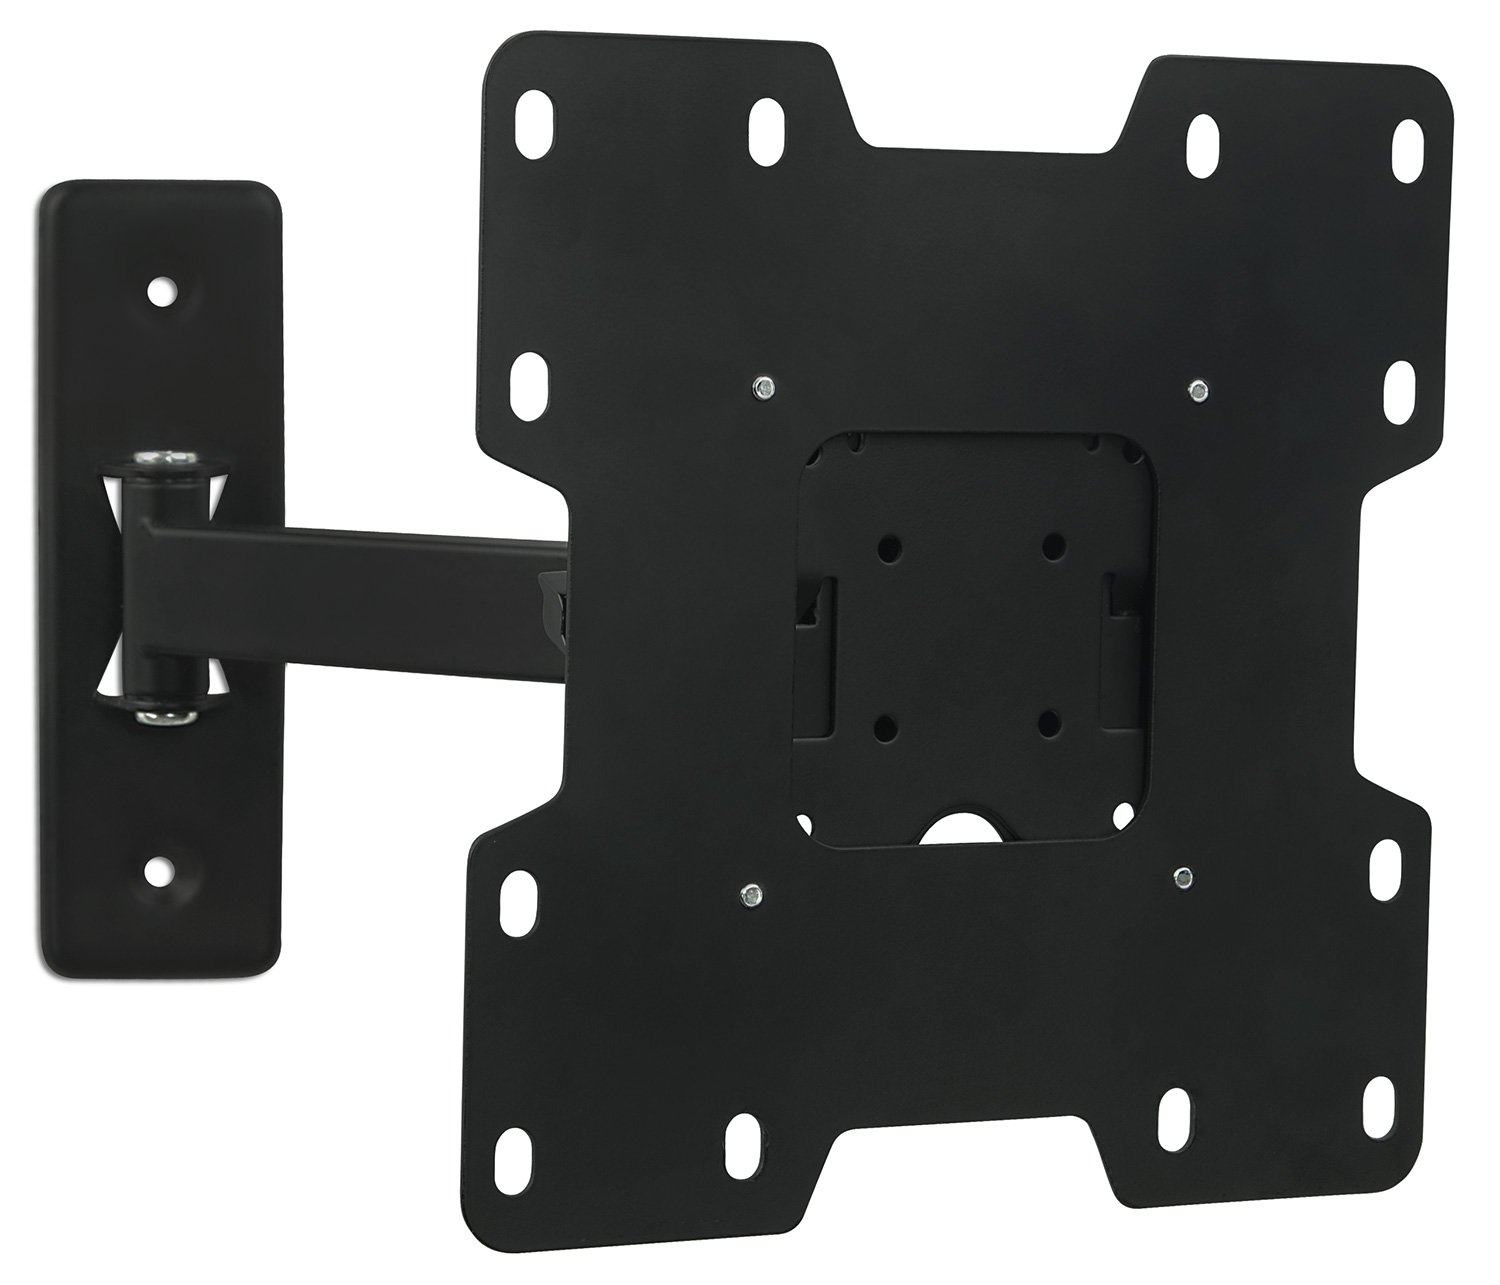 Mount-It! Articulating TV Wall Mount and Computer Monitor Mount for 23'' - 37'' LCD/LED/Plasma/4K Flat Panel Screen TV (VESA Standard up to 200x200mm), 55 Lbs. Weight Capacity, Black (MI-2701)